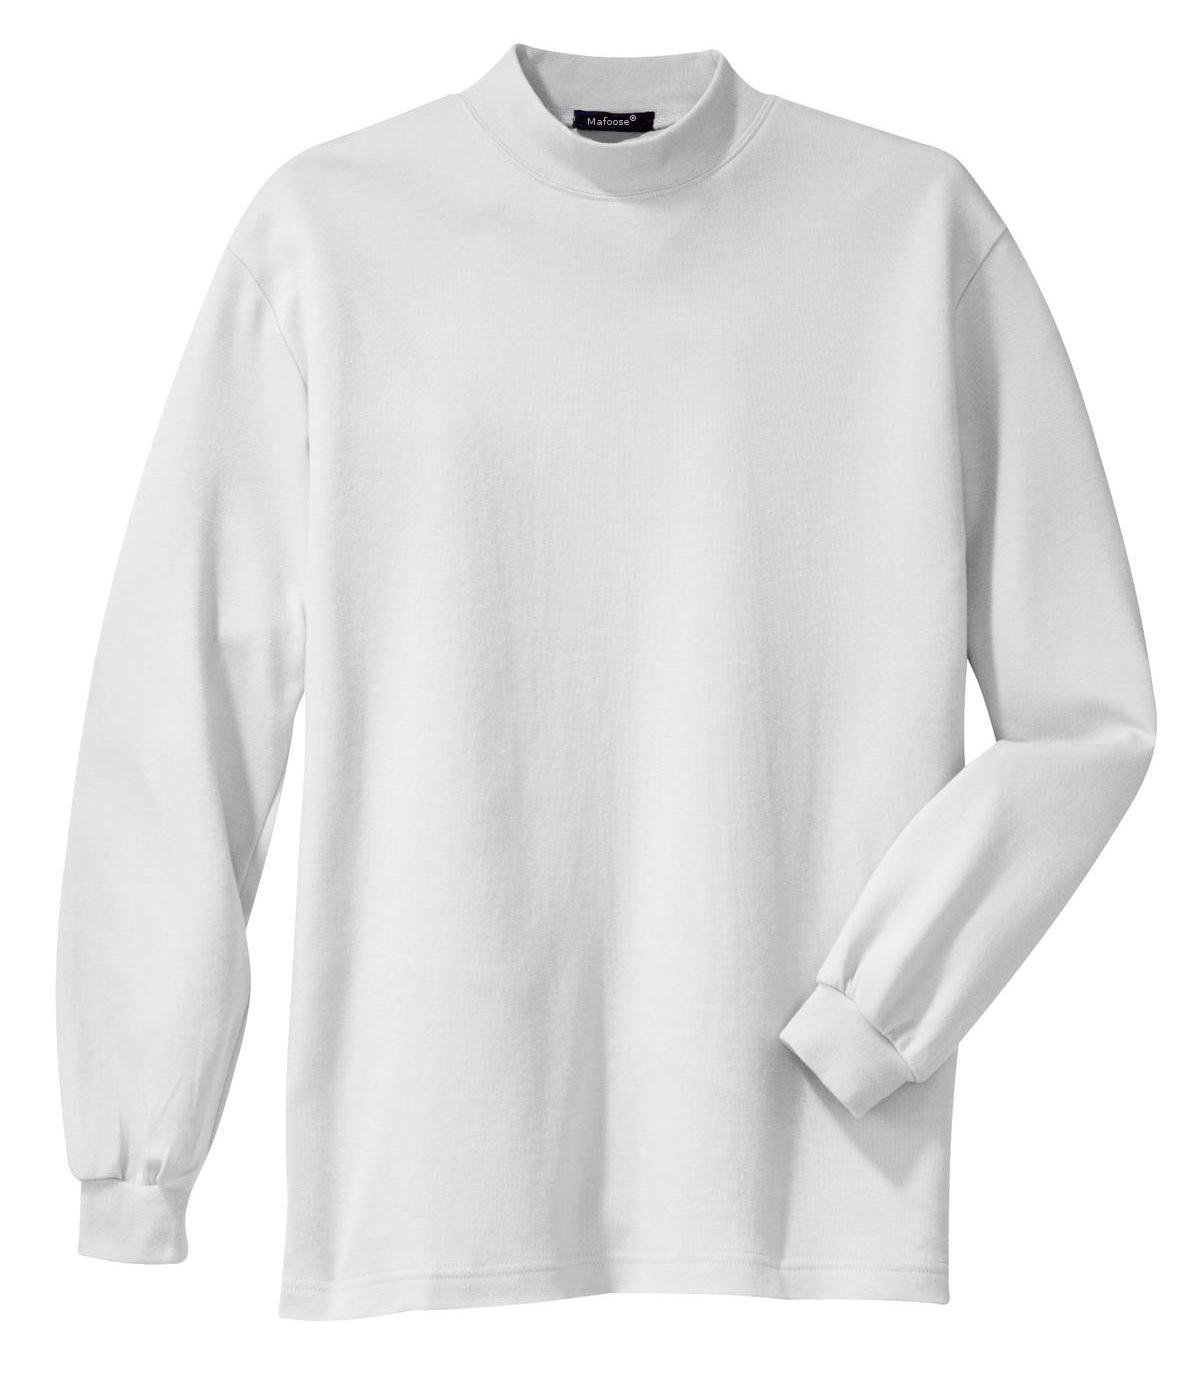 Mafoose Men's Interlock Knit Mock Turtleneck Sweaters White-Front